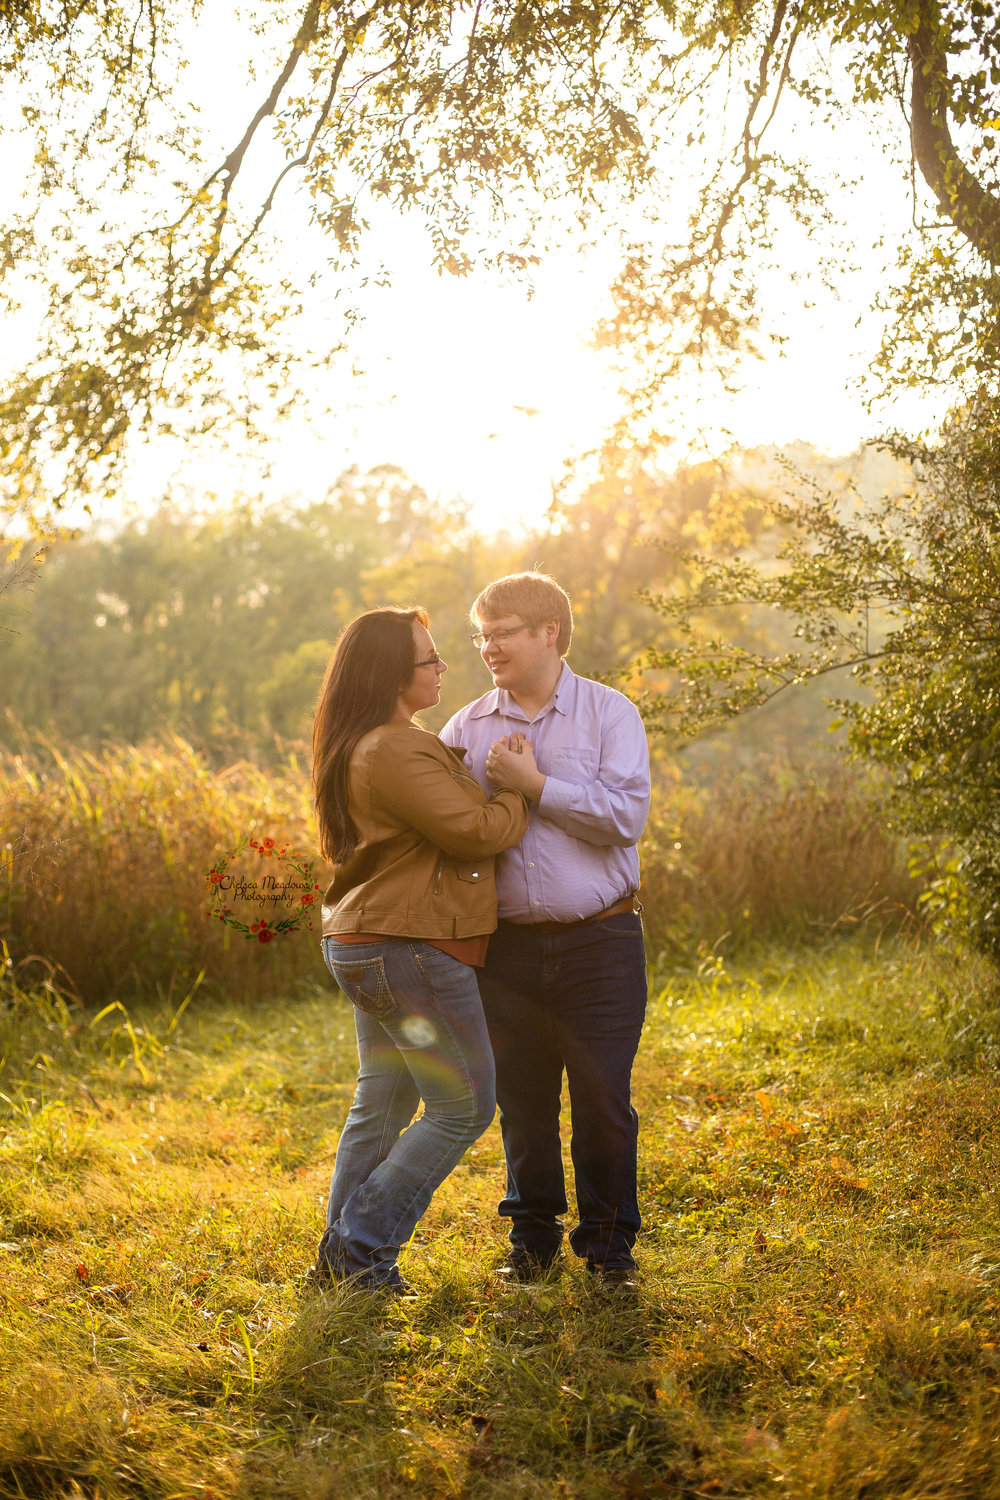 Ashley & Alex Engagement Session - Nashville Couple Photographer - Chelsea Meadows Photography (49).jpg